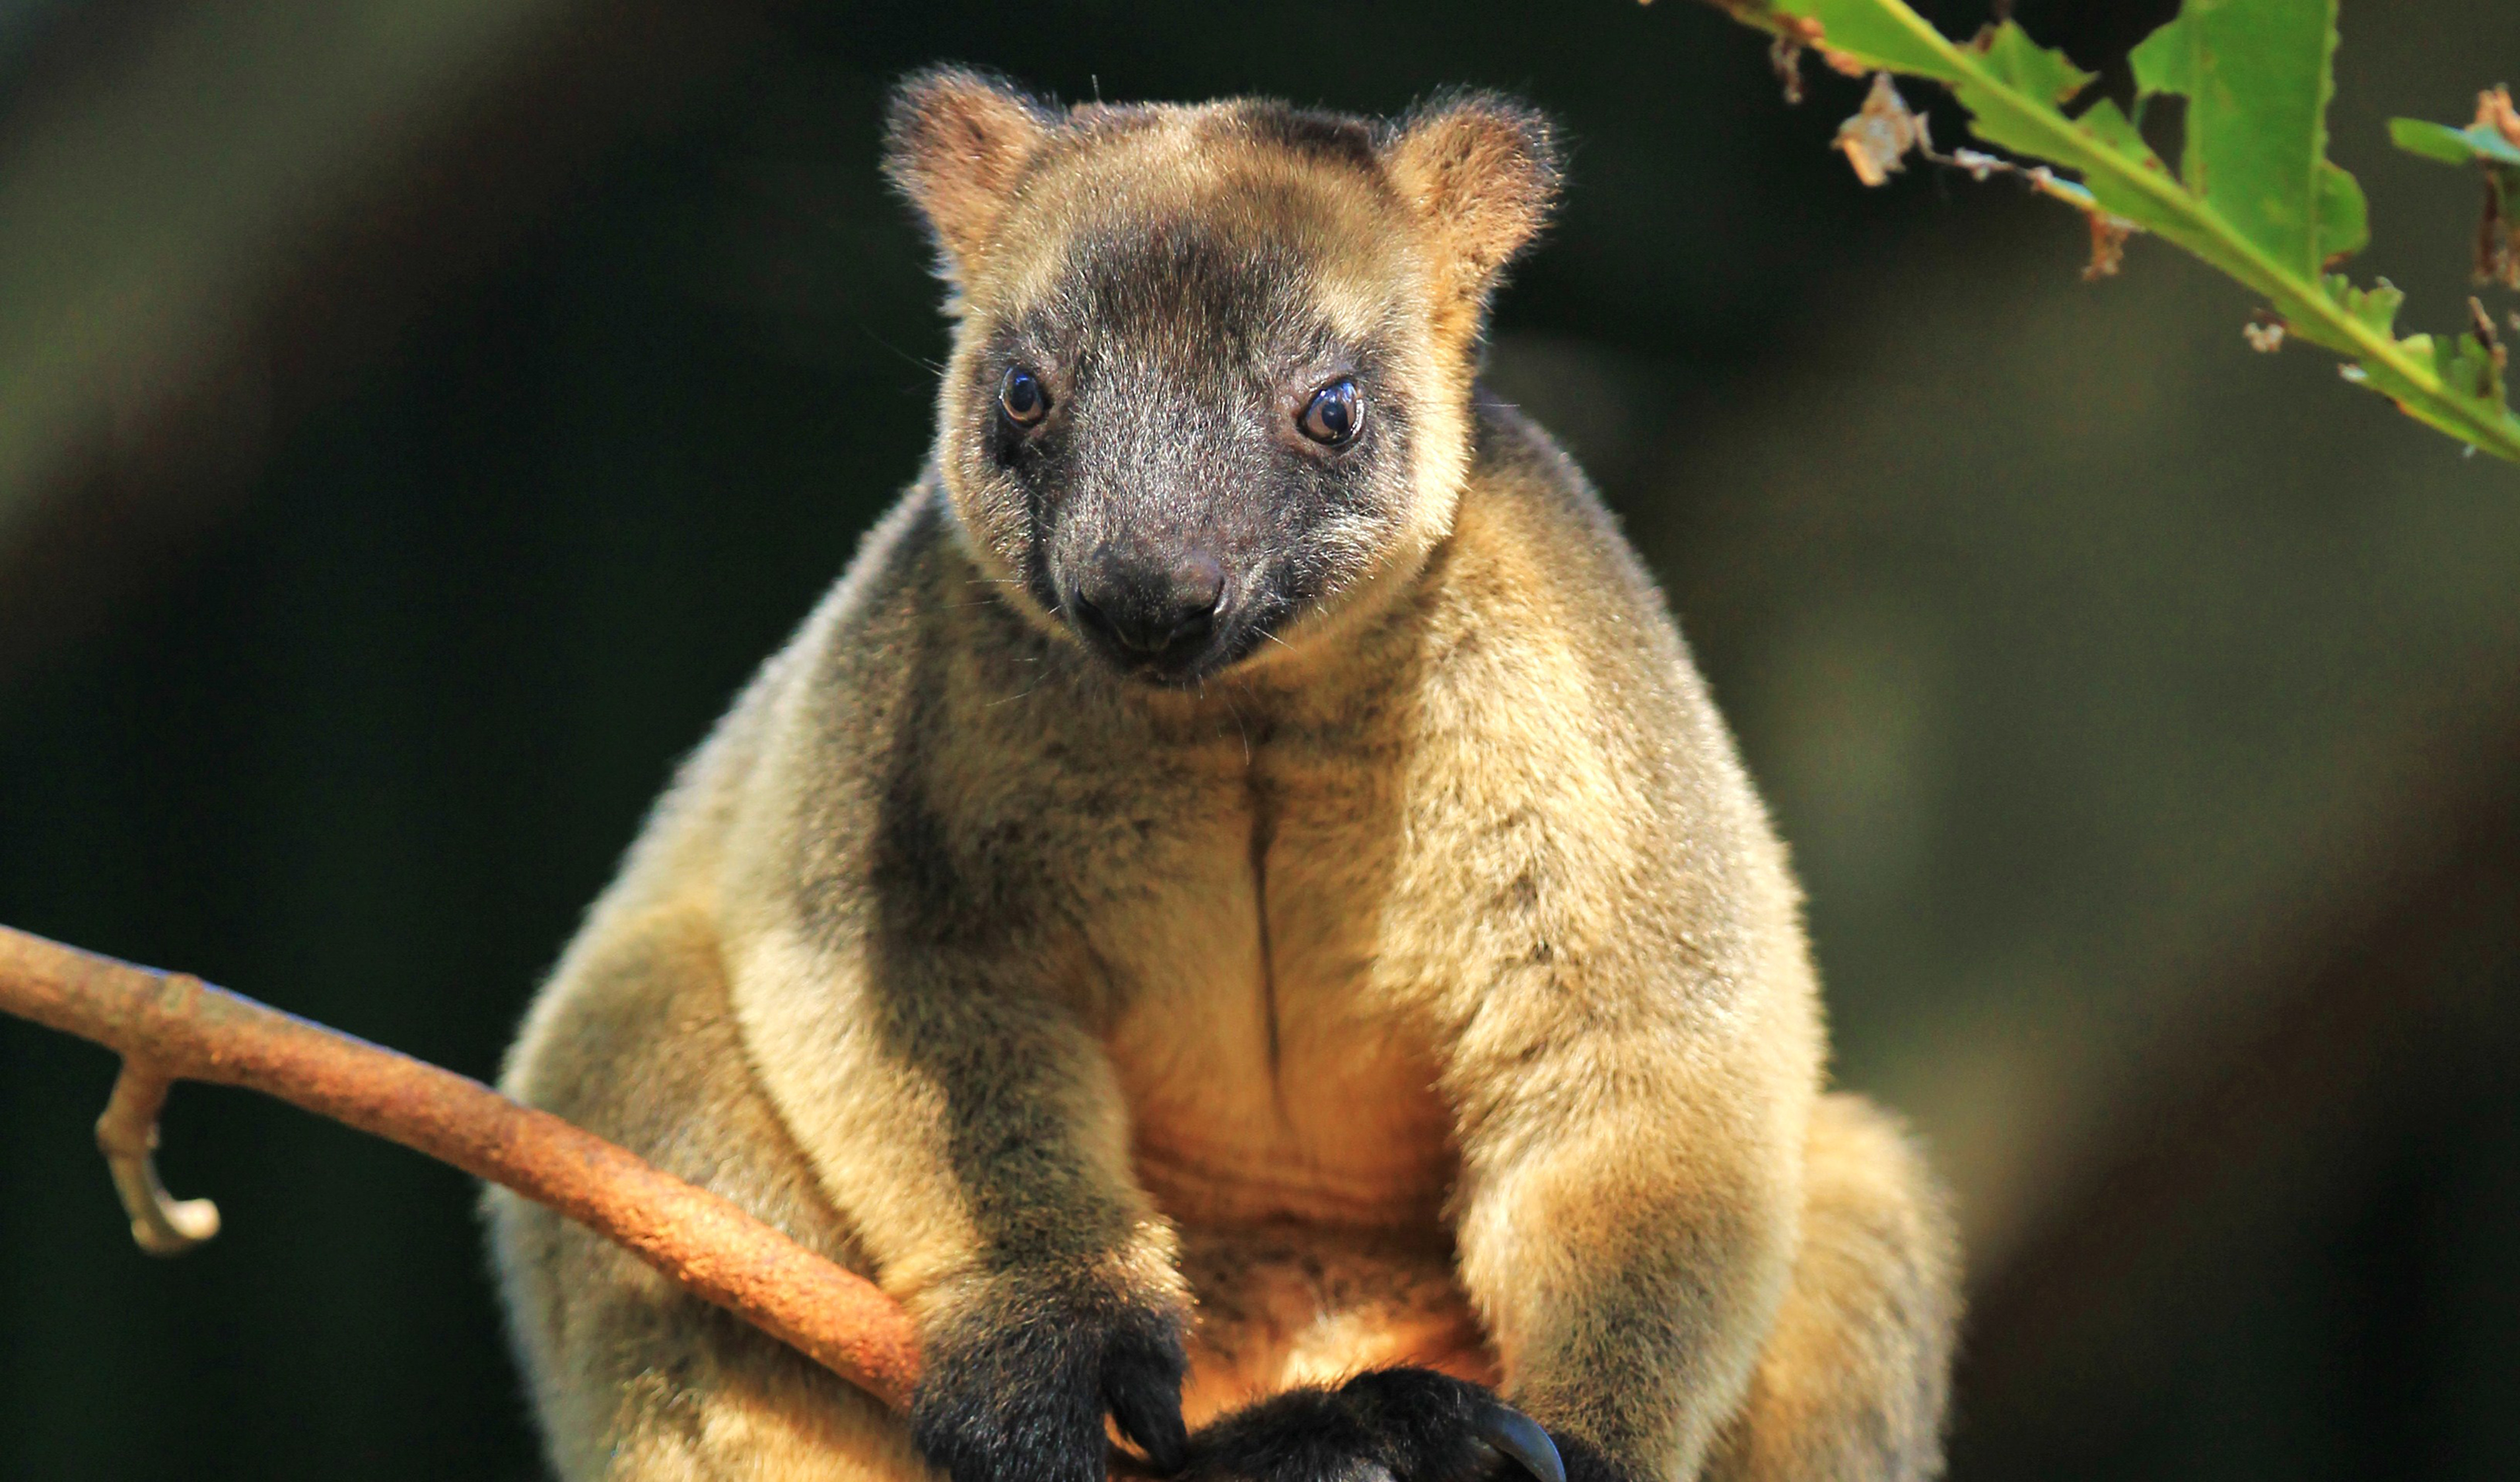 Given the current status of the Lumholtz's tree kangaroo, sustaining the wild population and reducing the threats is the most crucial component to ...